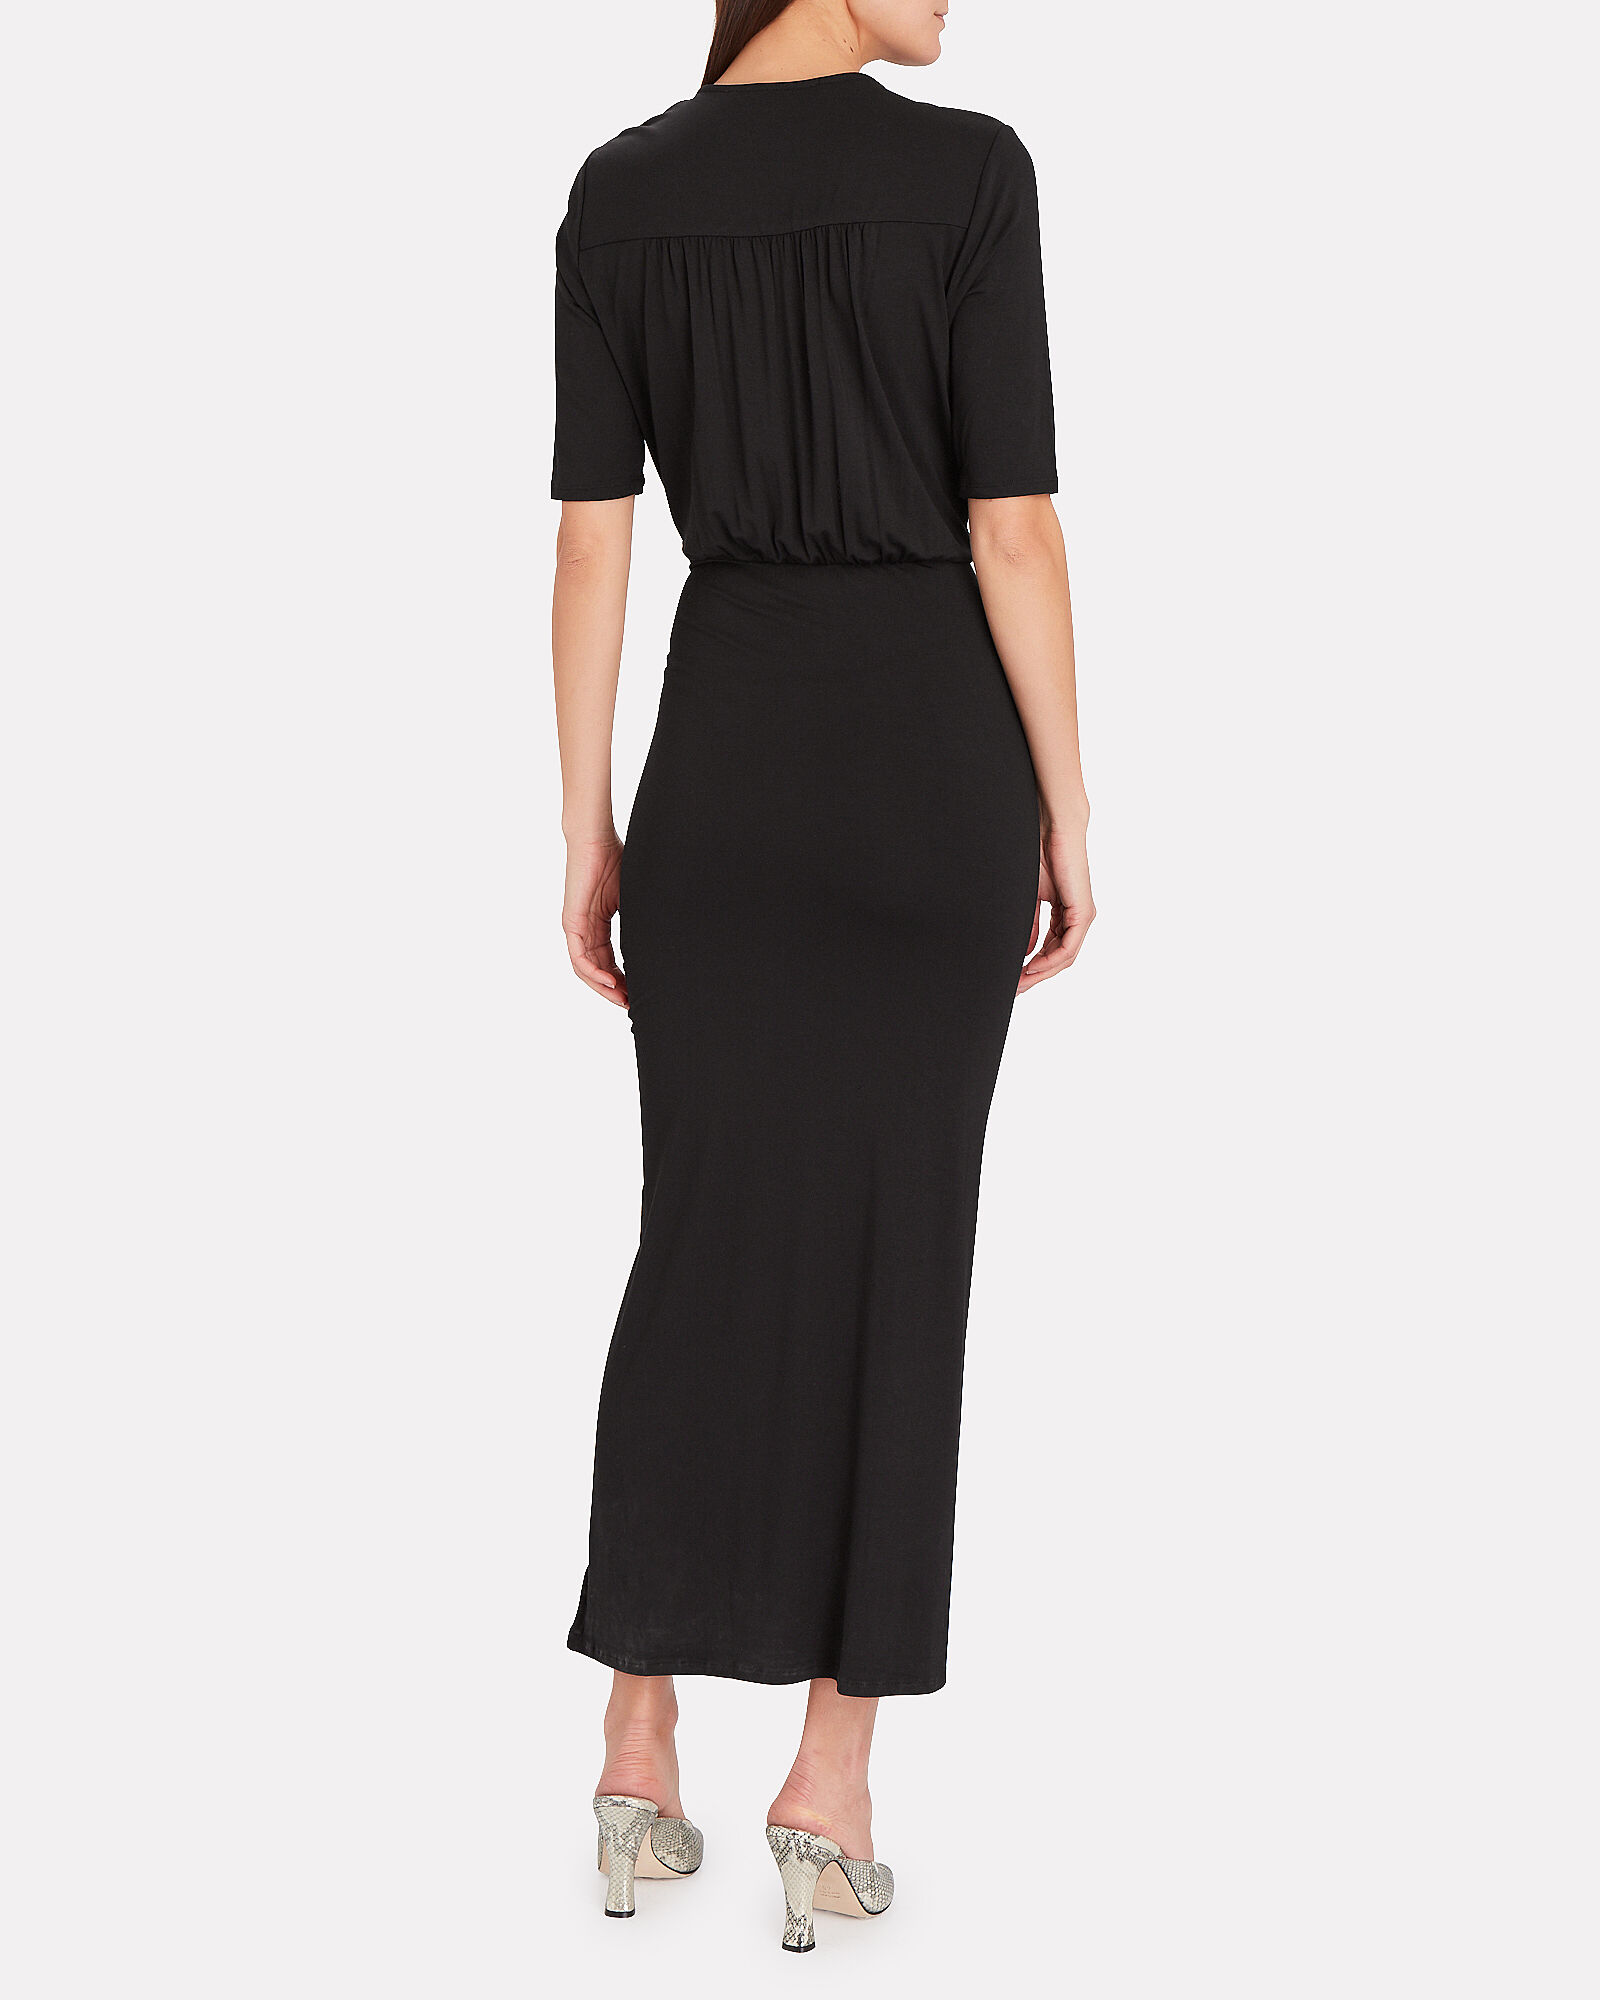 Mariposa Ruched Jersey Dress, BLACK, hi-res